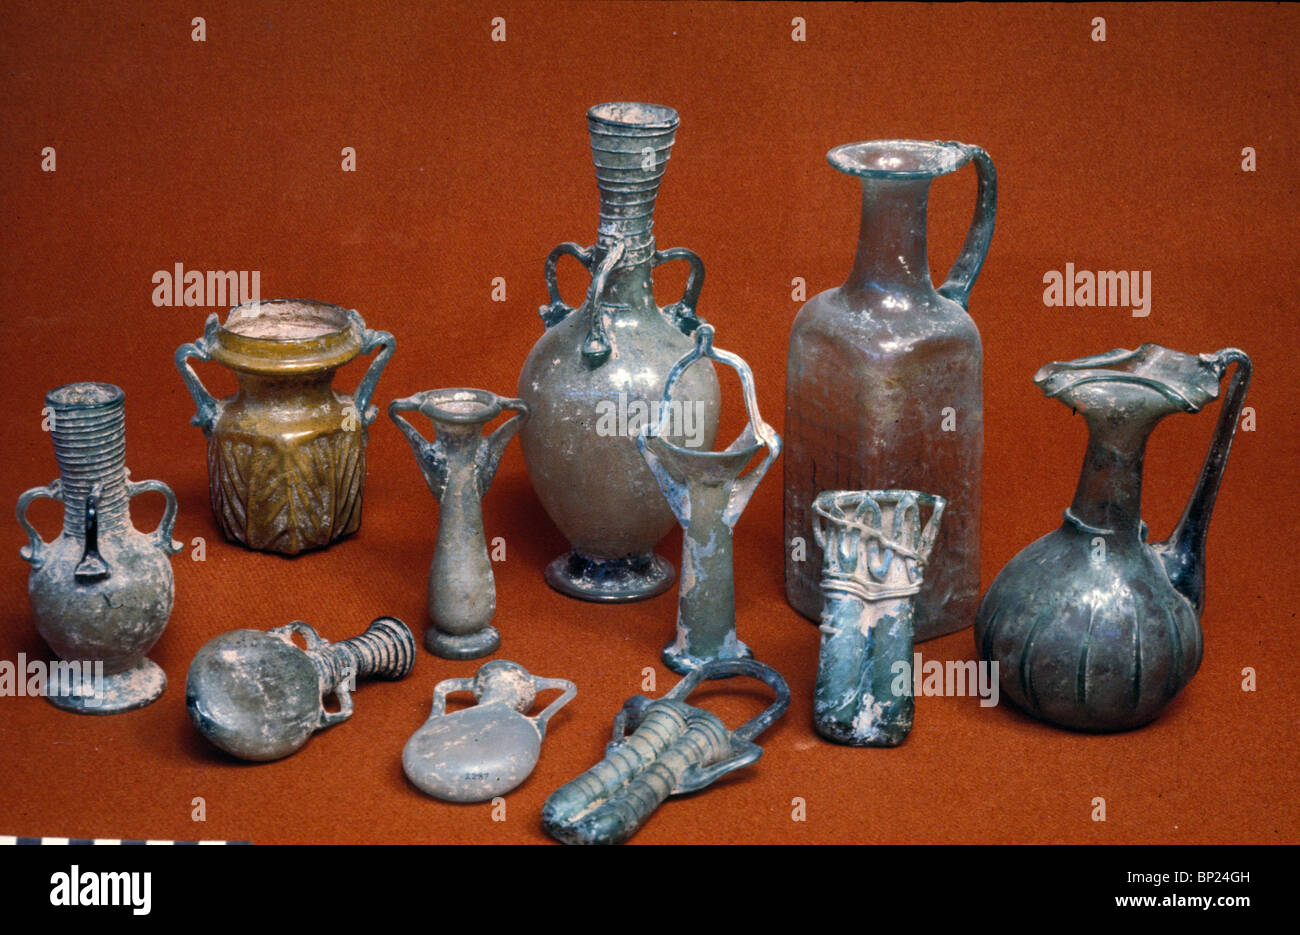 563. ROMAN GLASS VESSELS USED FOR FINE OILS, PERFUMES AND COSMETICS - Stock Image